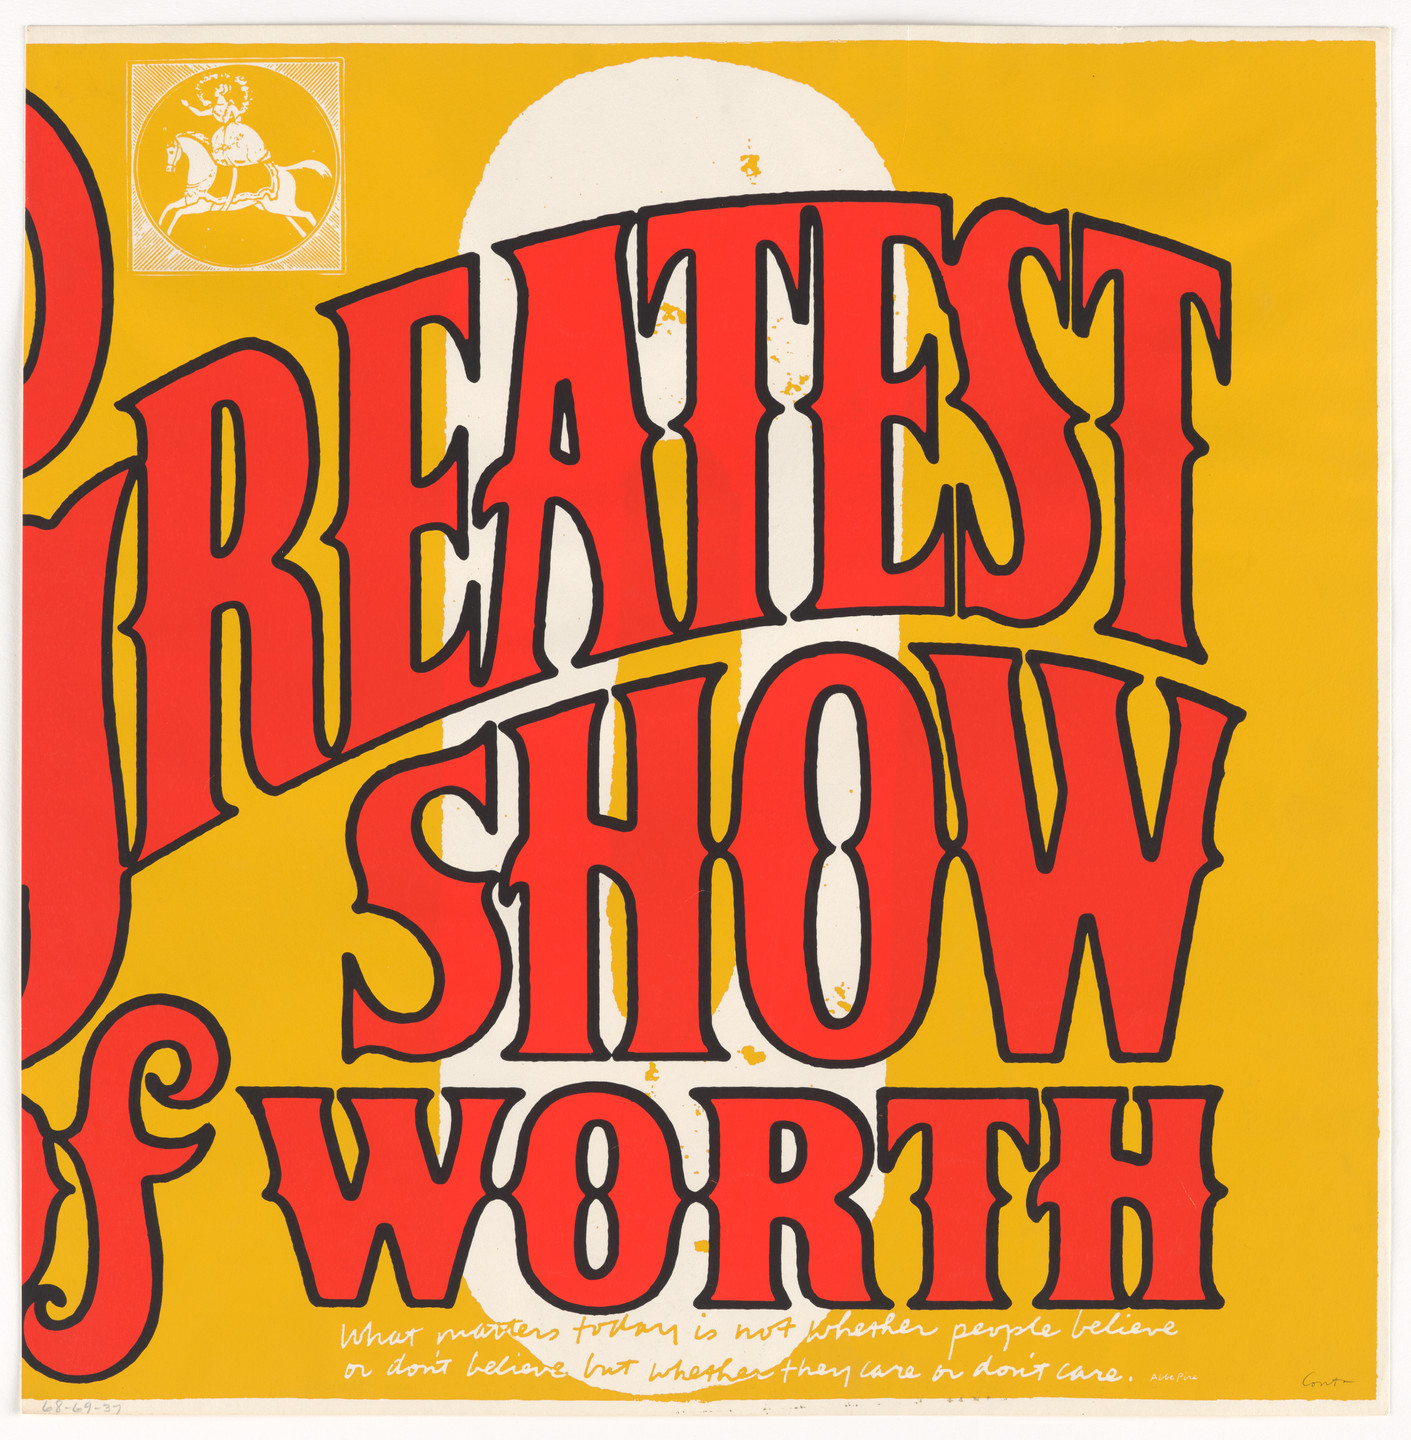 Corita Kent (Sister Mary Corita). O greatest show of worth from circus alphabet. 1968